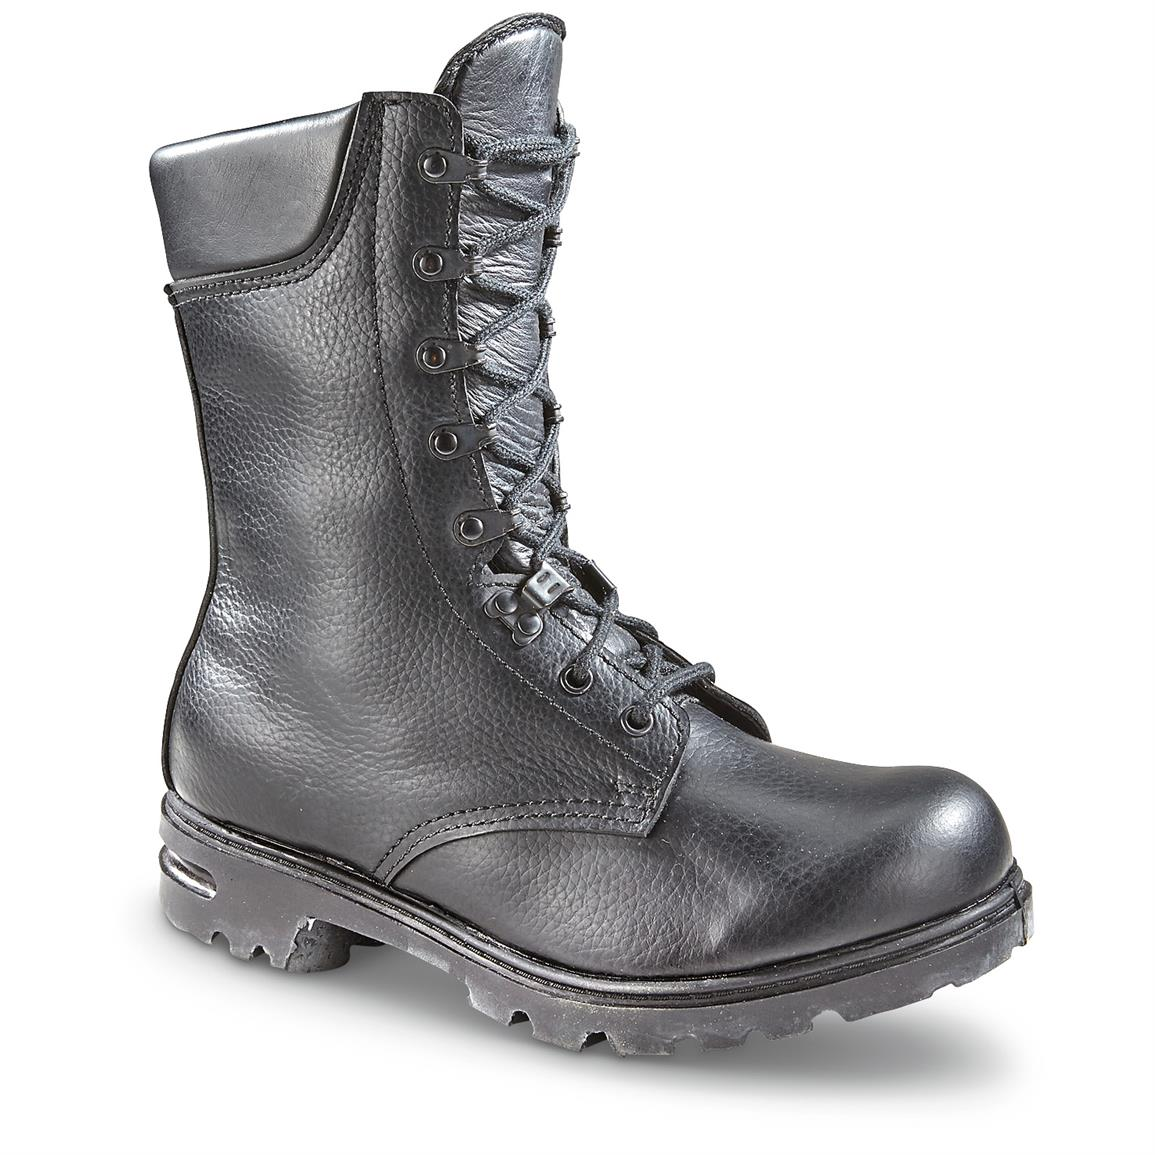 Dutch Military Issue Leather Combat Boots, New